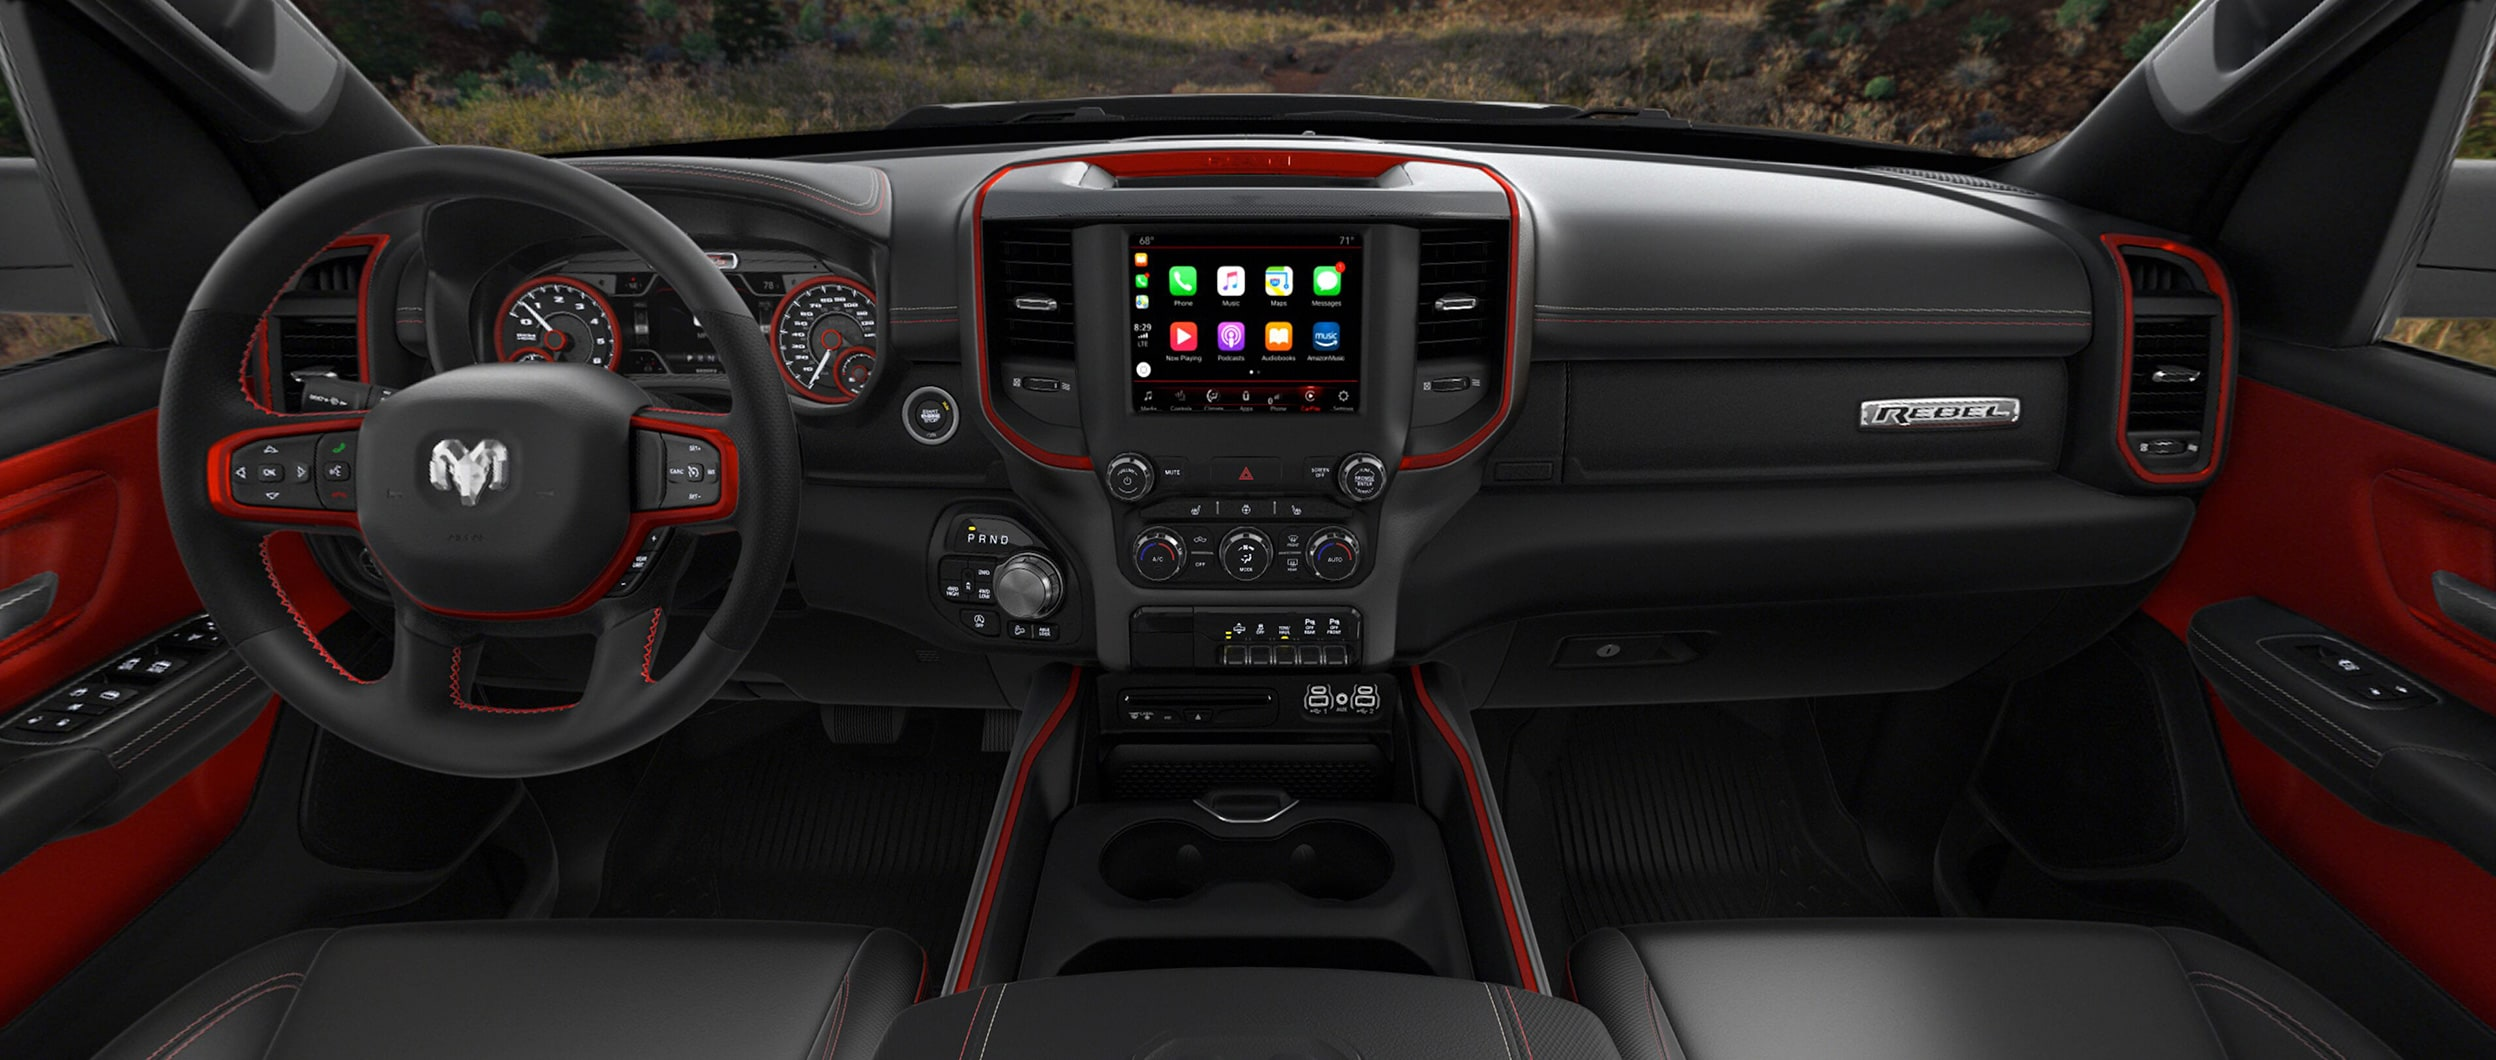 2020 Ram Rebel Interior With Red Trim